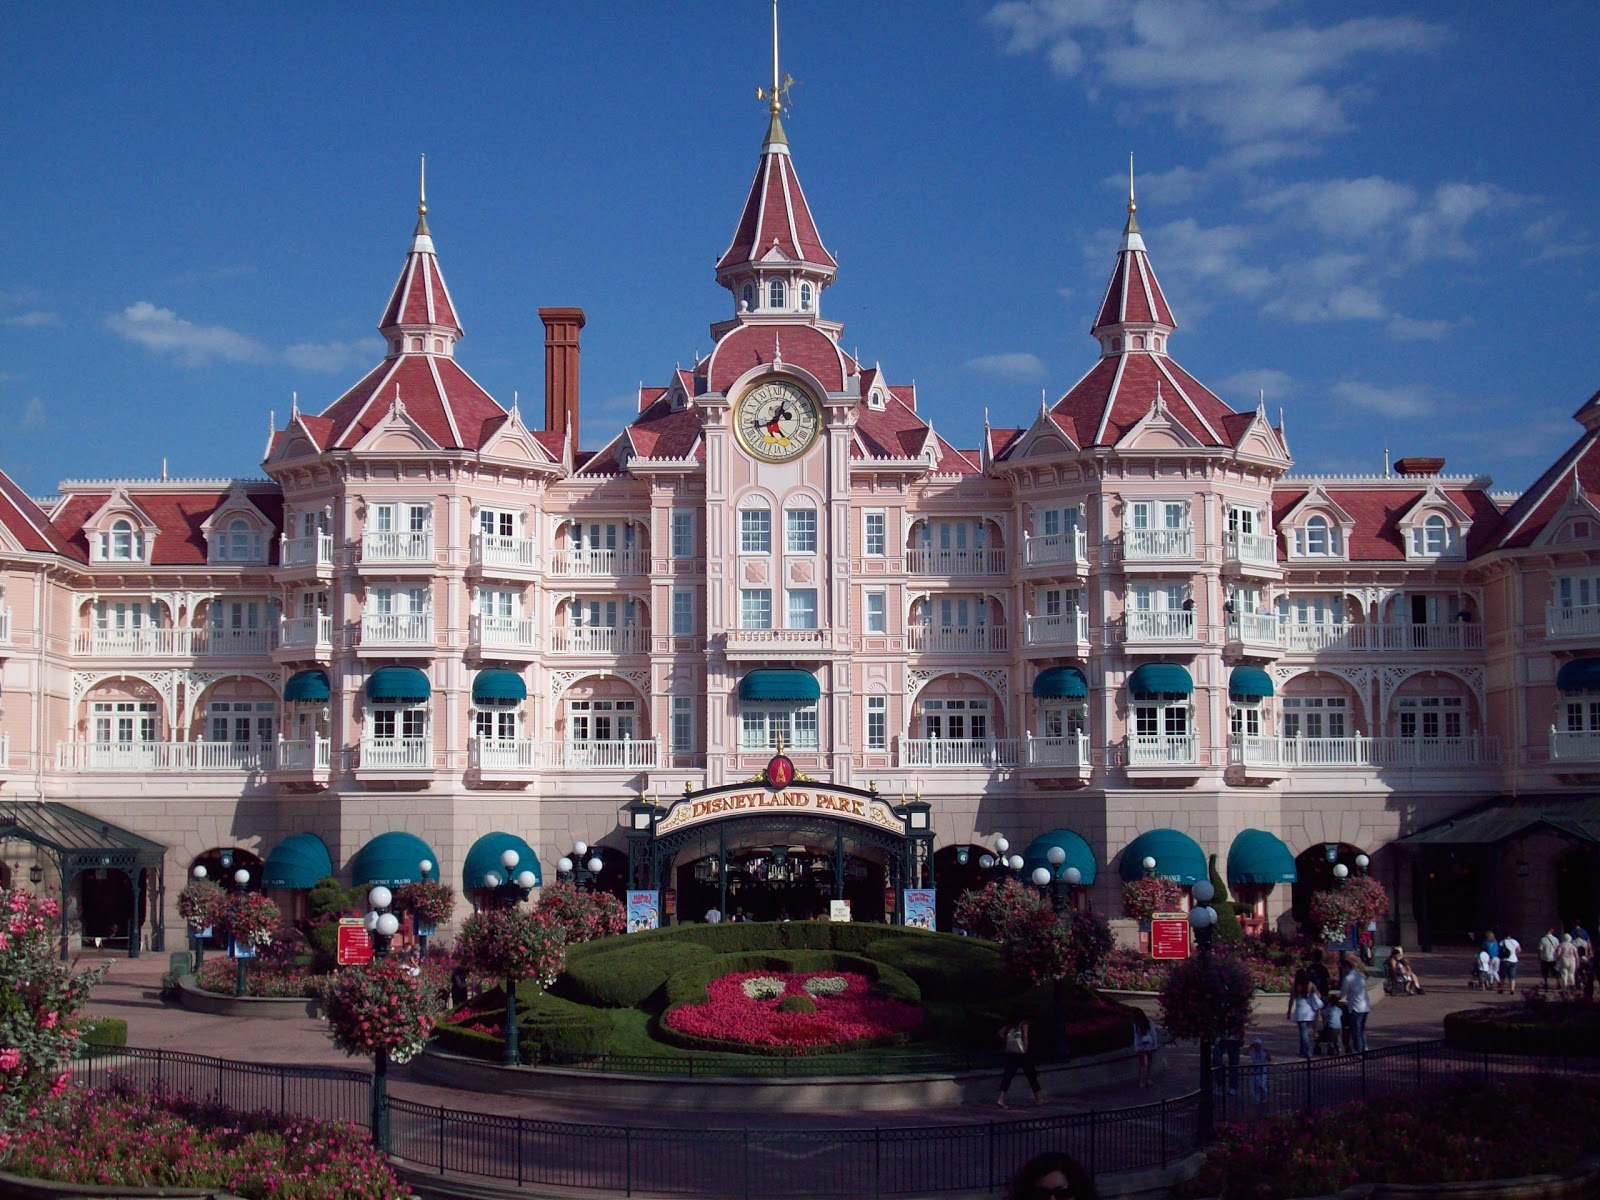 Travel to disneyland park at paris travel and tourism for Hotels disney